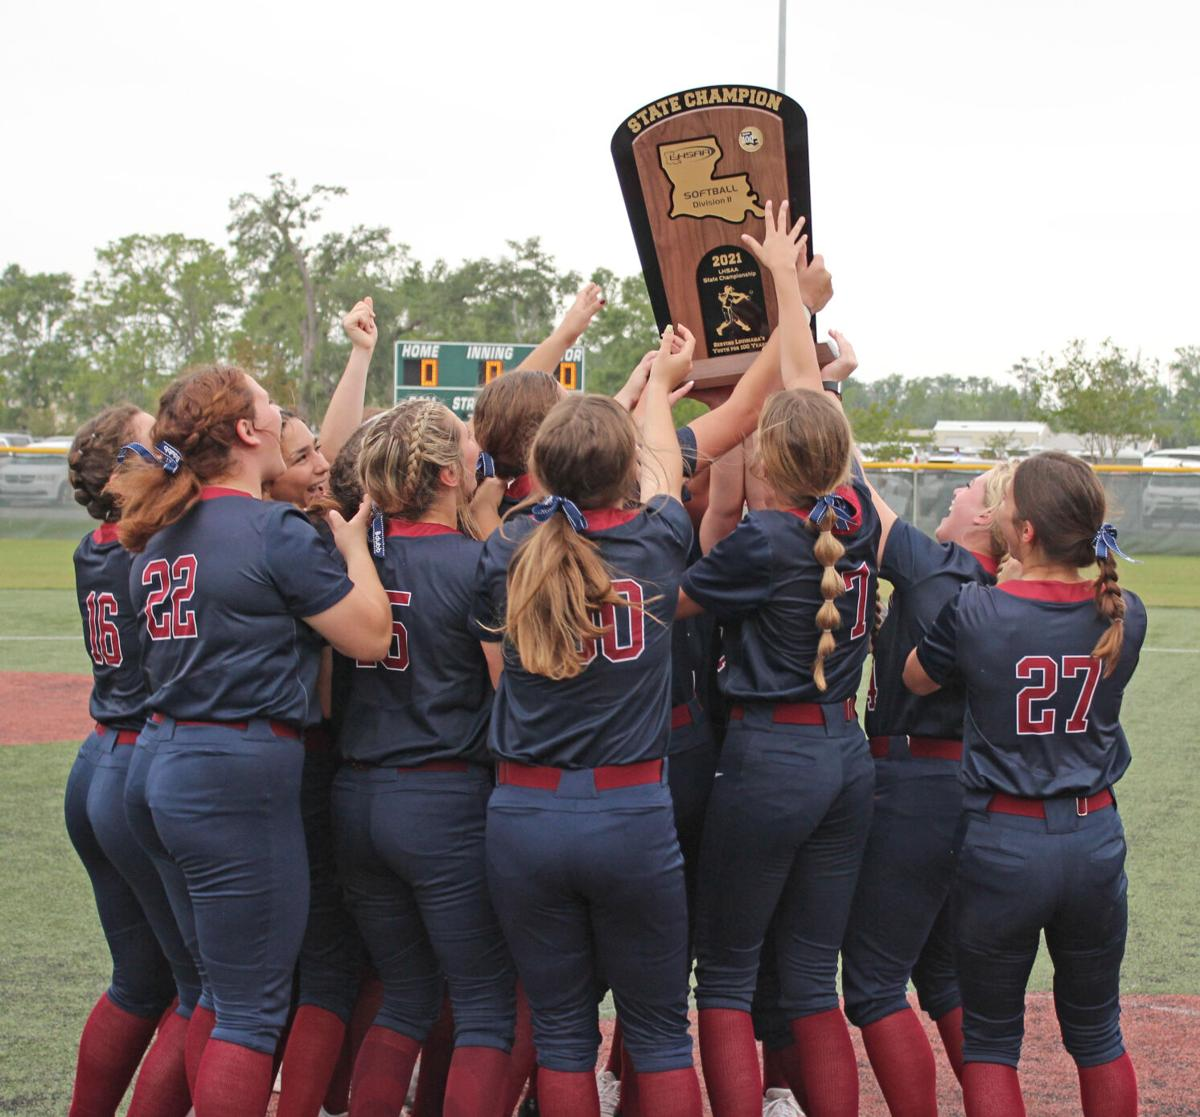 Hannan wins the Division II state softball championship